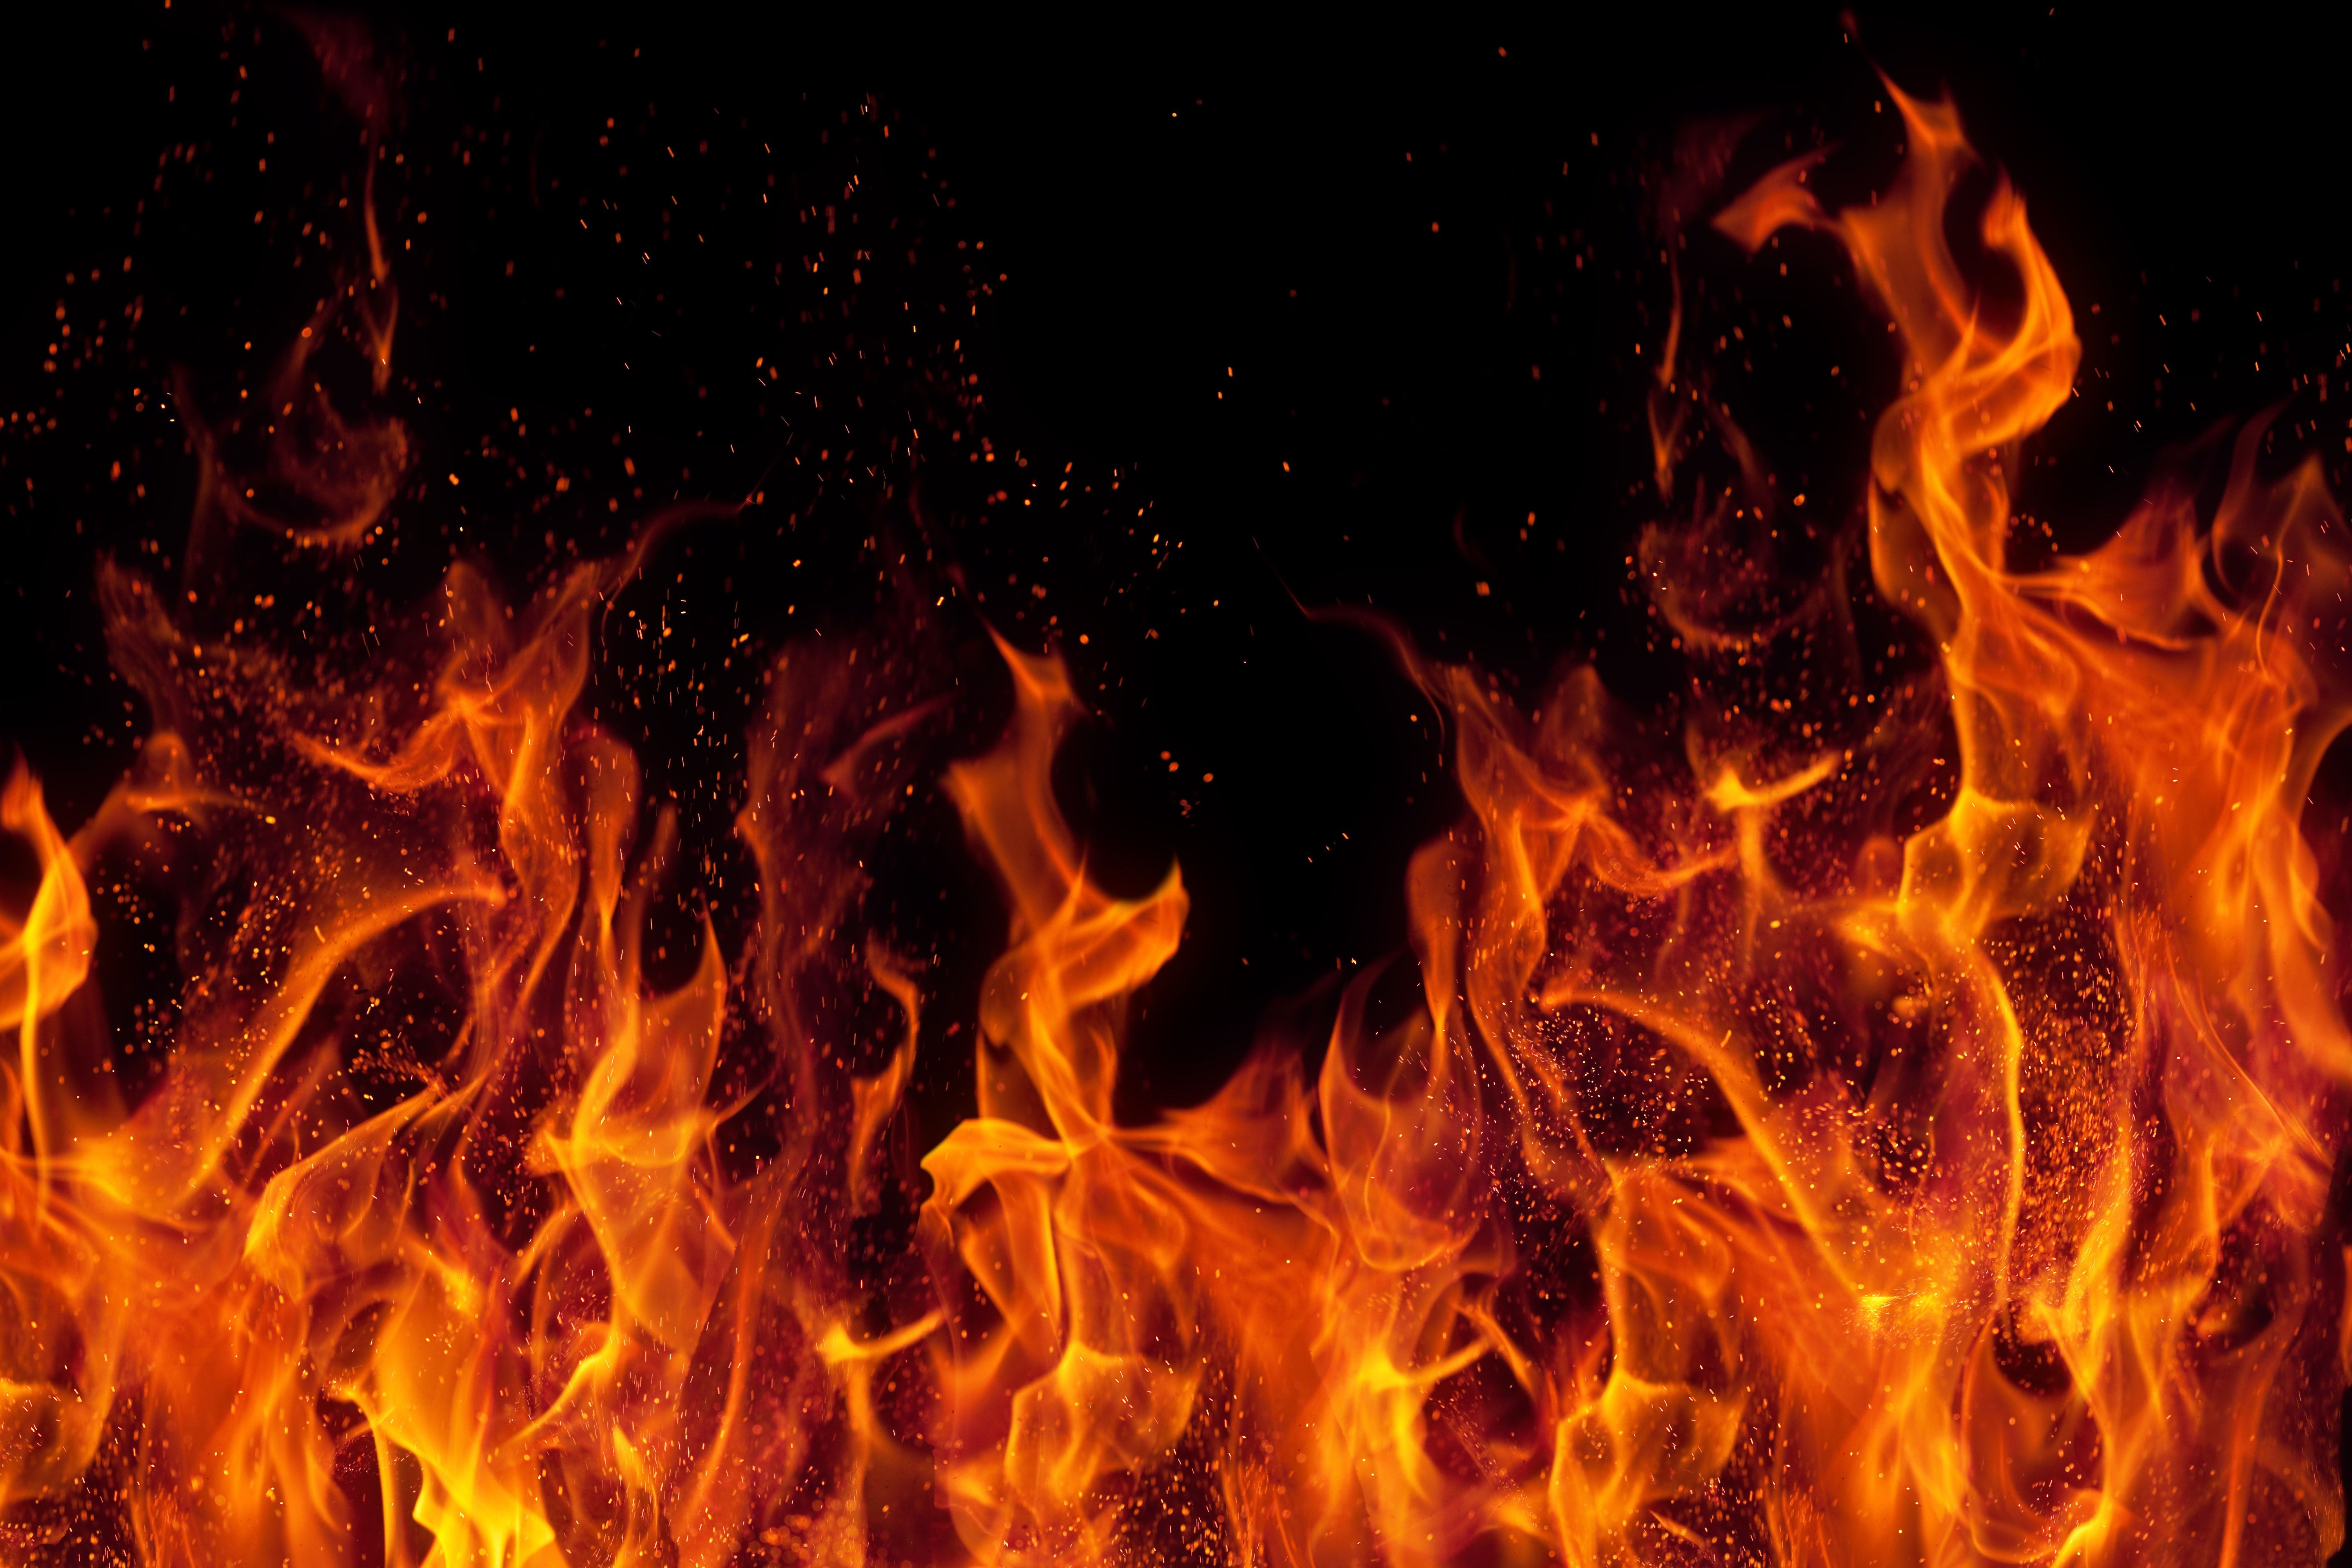 Flame Sparks Causes Of Fire Fire Image Background Hd Wallpaper